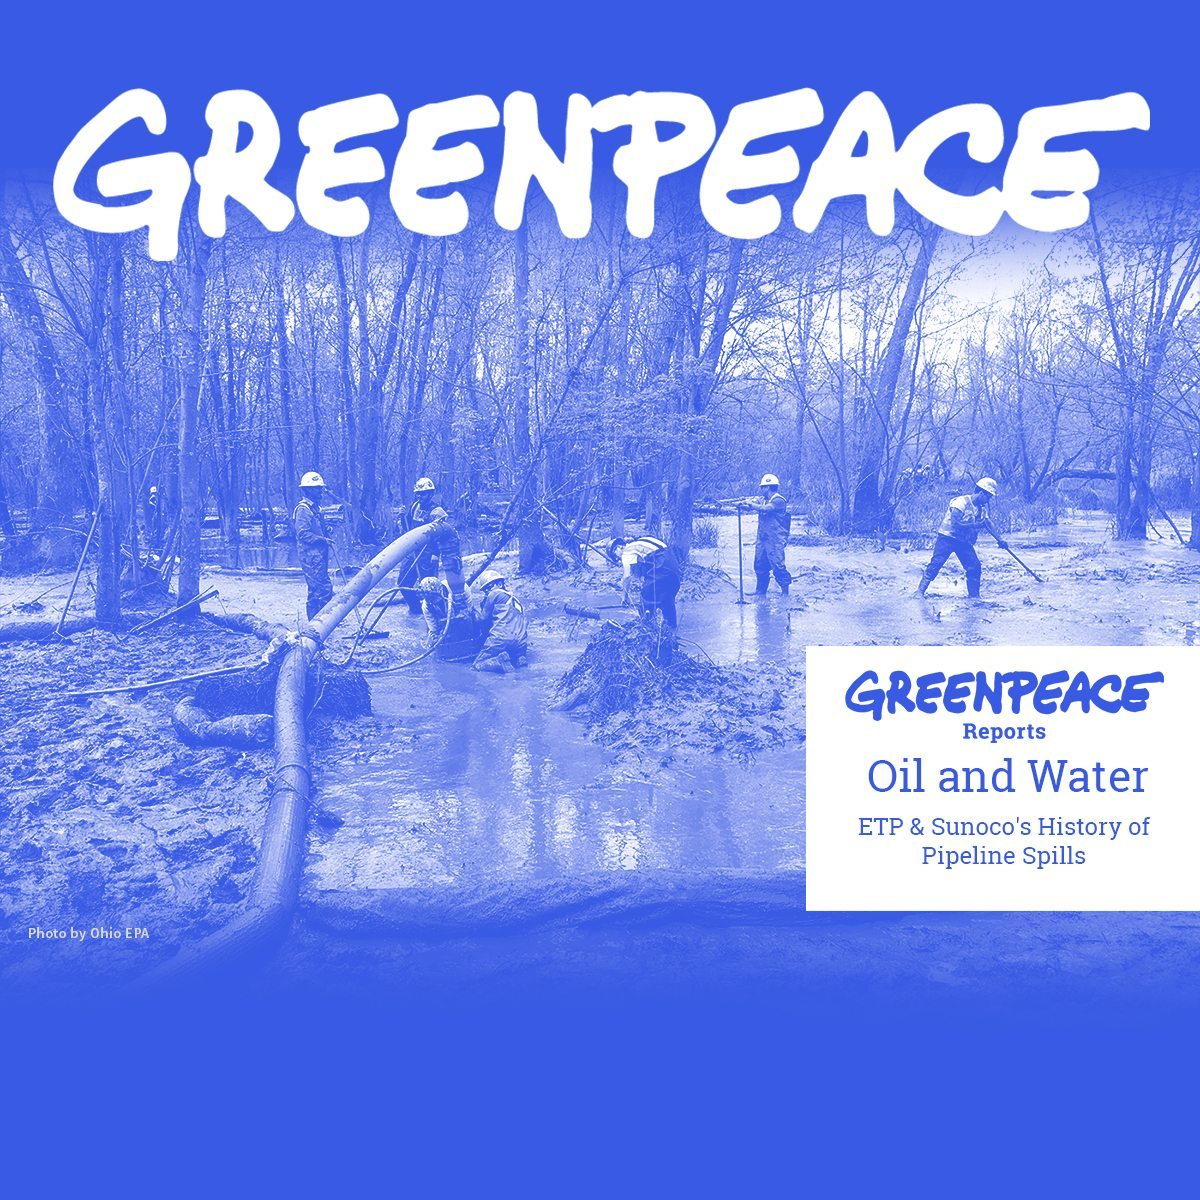 Greenpeace Report: Oil and Water: ETP & Sunoco's History of Pipeline